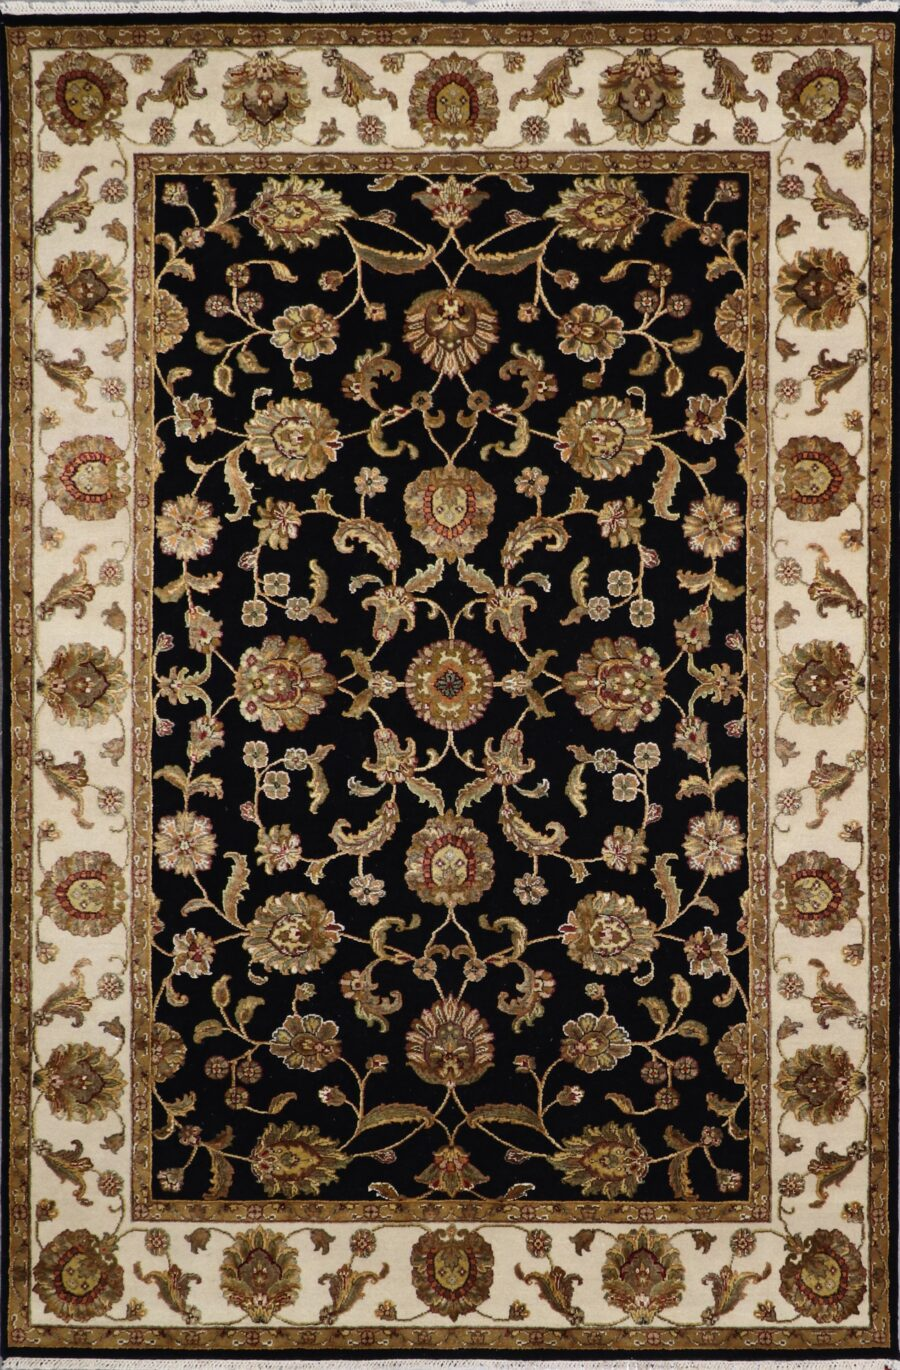 """6'x9'1"""" Traditional Black Kashan Wool & Silk Hand-Knotted Rug - Direct Rug Import   Rugs in Chicago, Indiana,South Bend,Granger"""